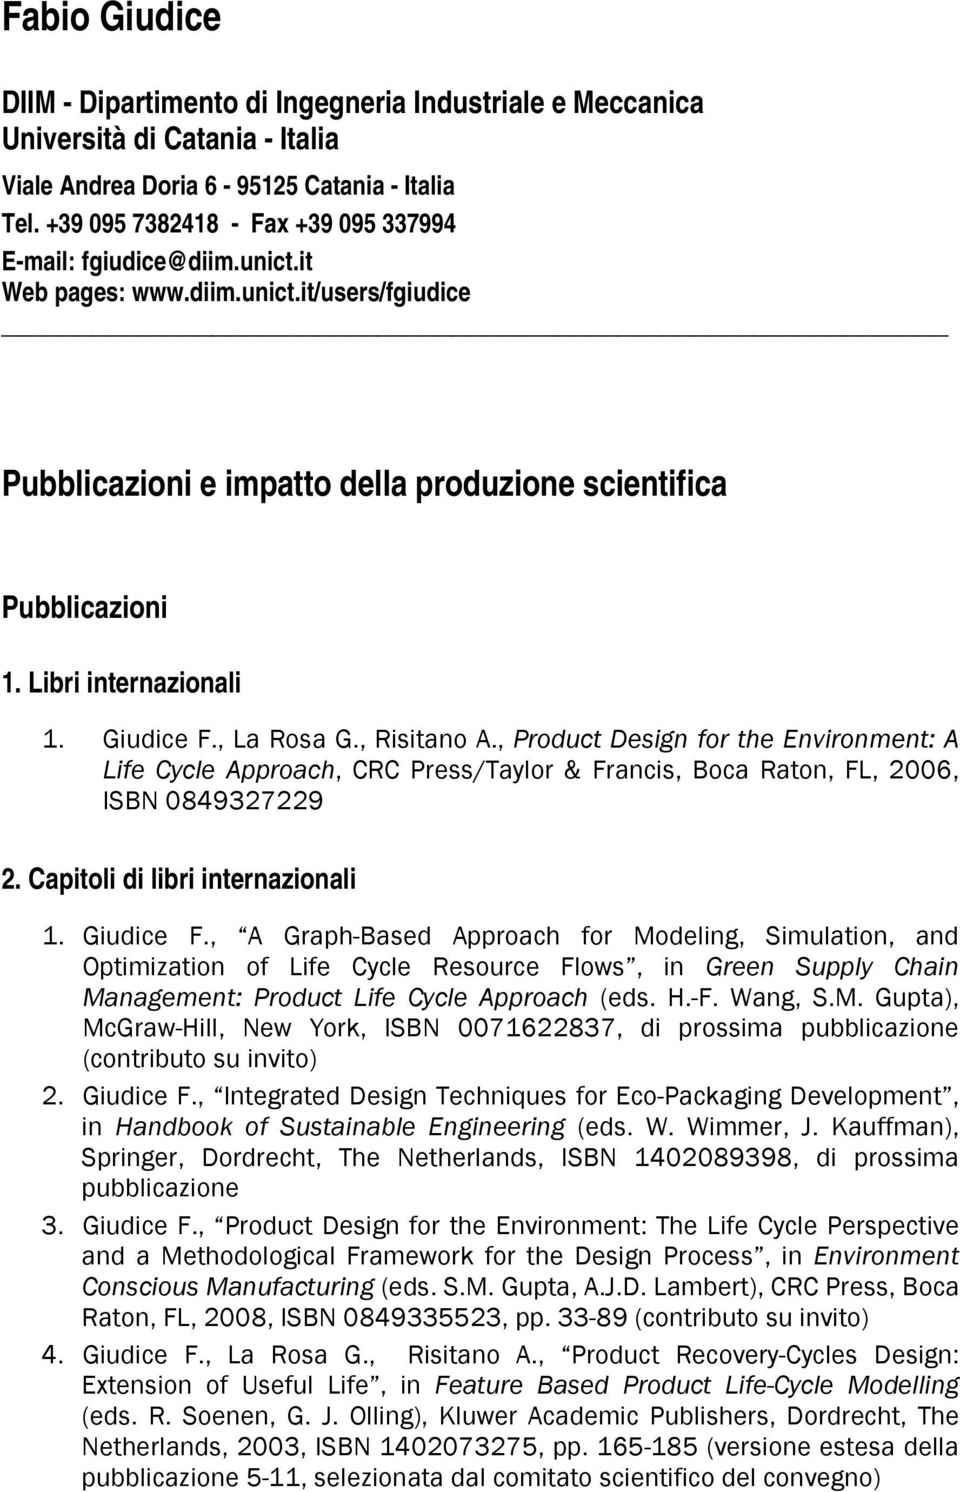 Libri internazionali 1. Giudice F., La Rosa G., Risitano A., Product Design for the Environment: A Life Cycle Approach, CRC Press/Taylor & Francis, Boca Raton, FL, 2006, ISBN 0849327229 2.